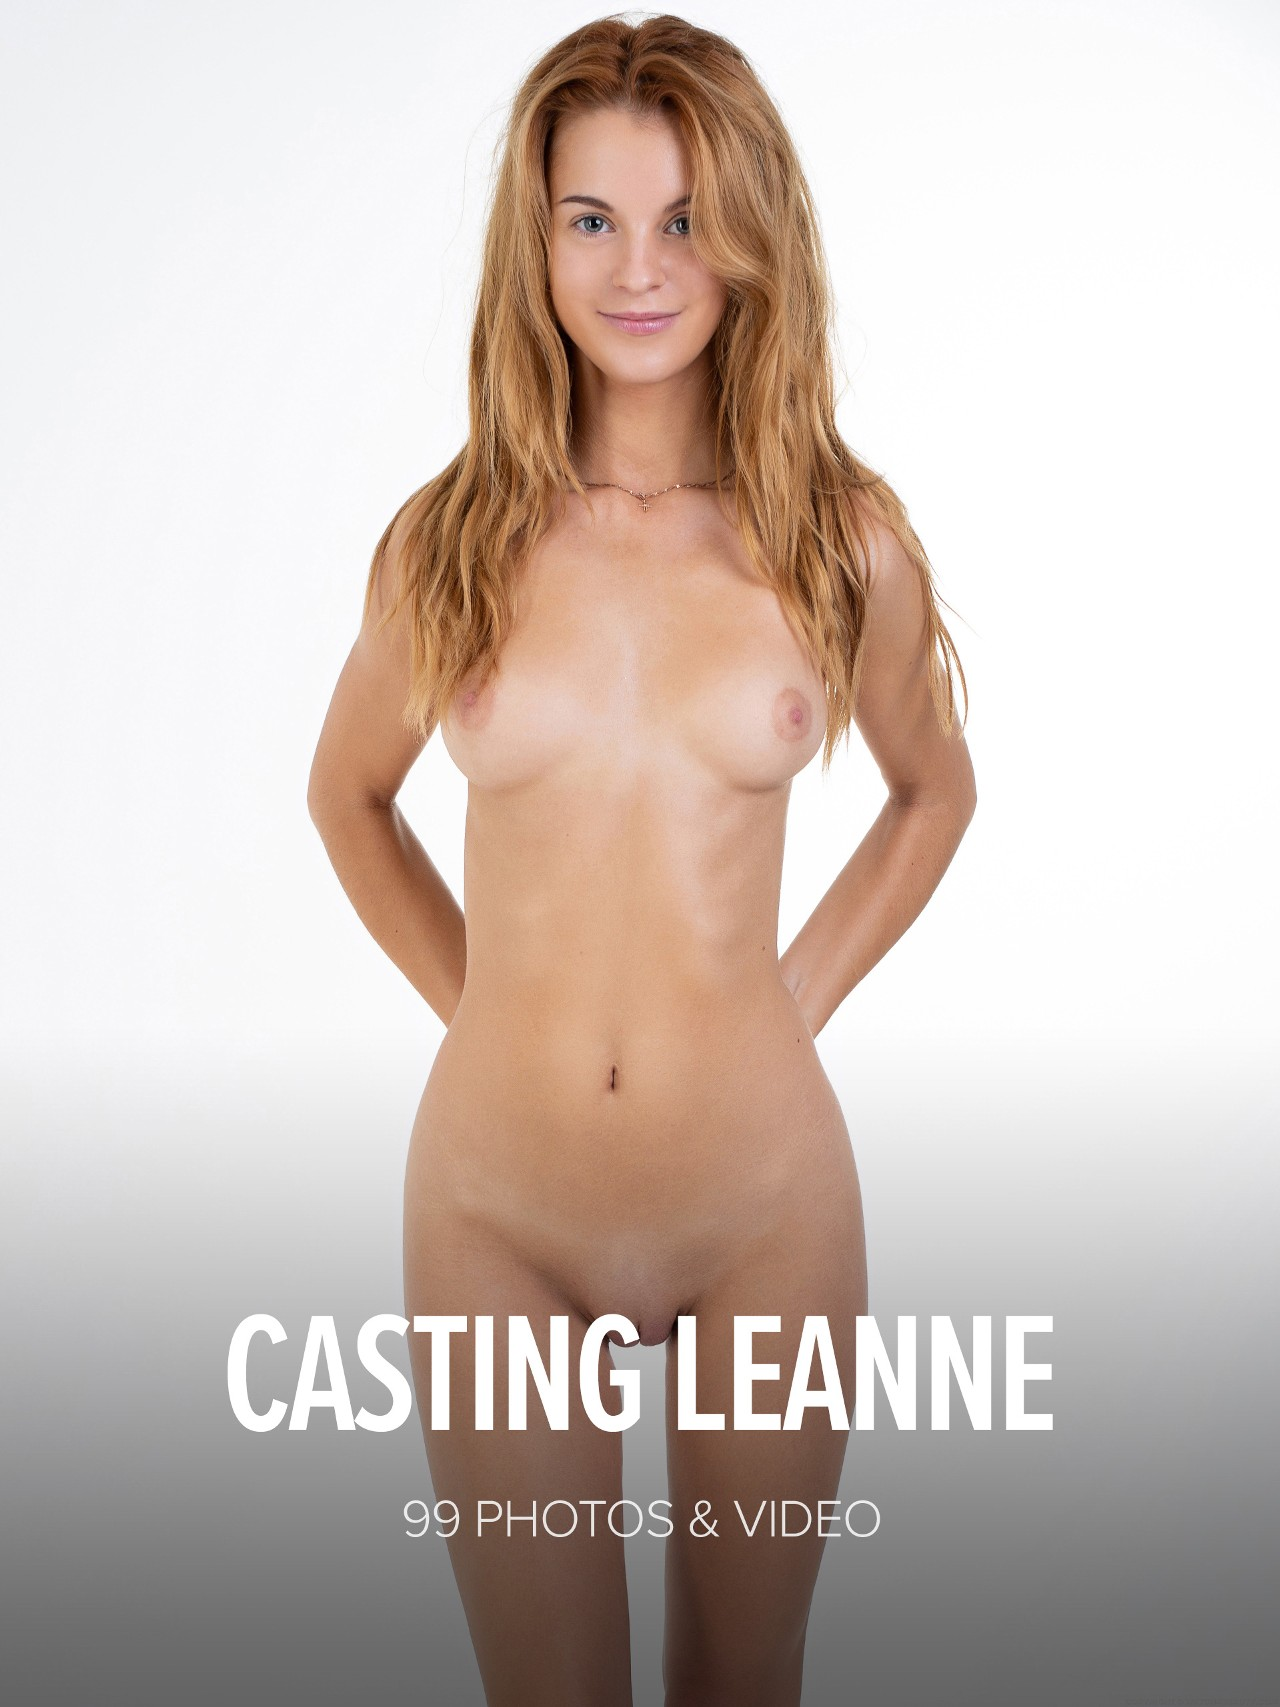 Leanne: CASTING Leanne